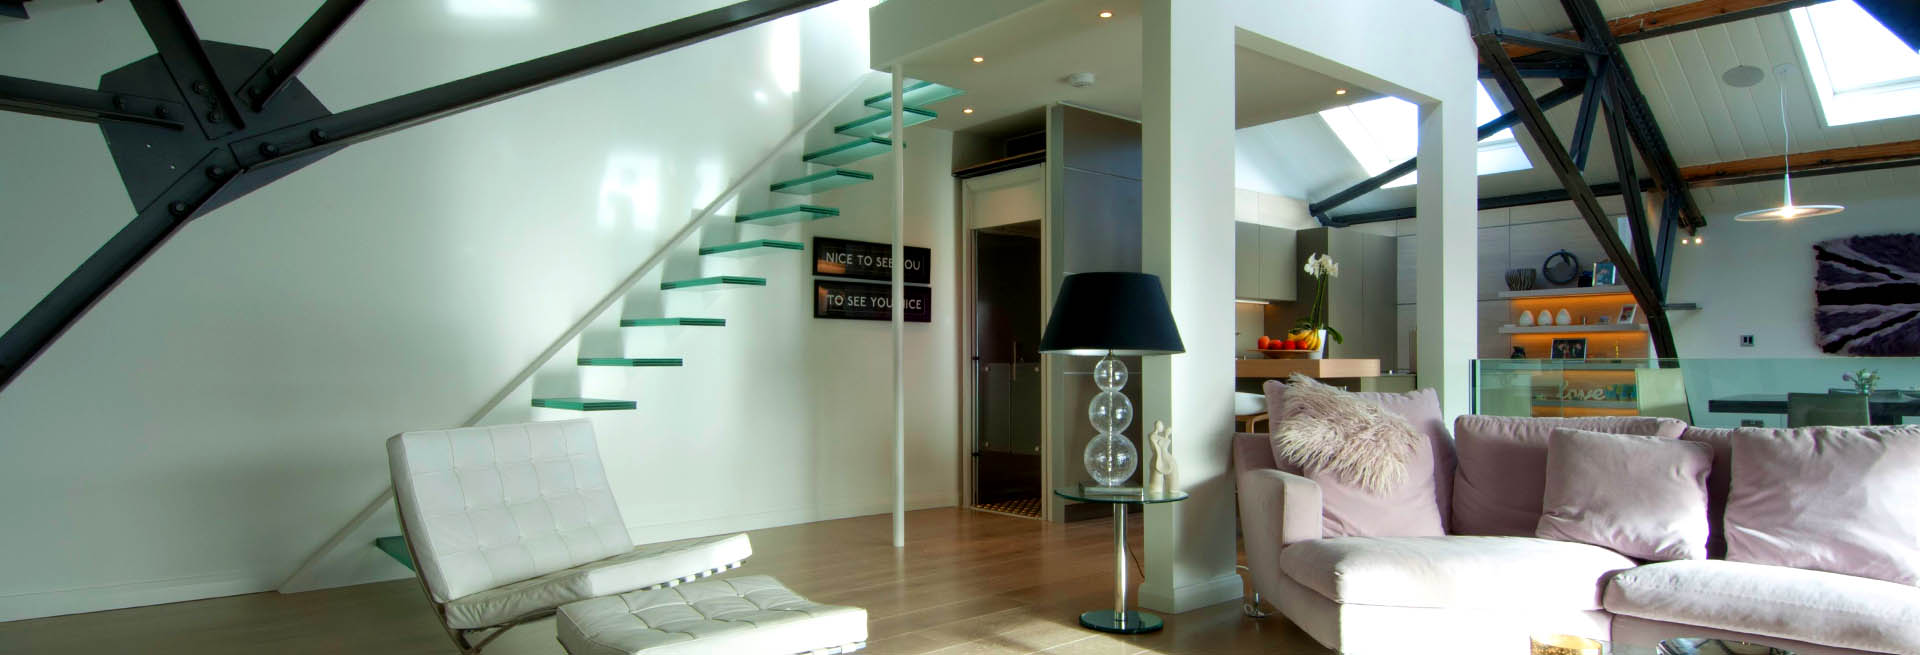 Lifts for Homes Slideshow Banner Image